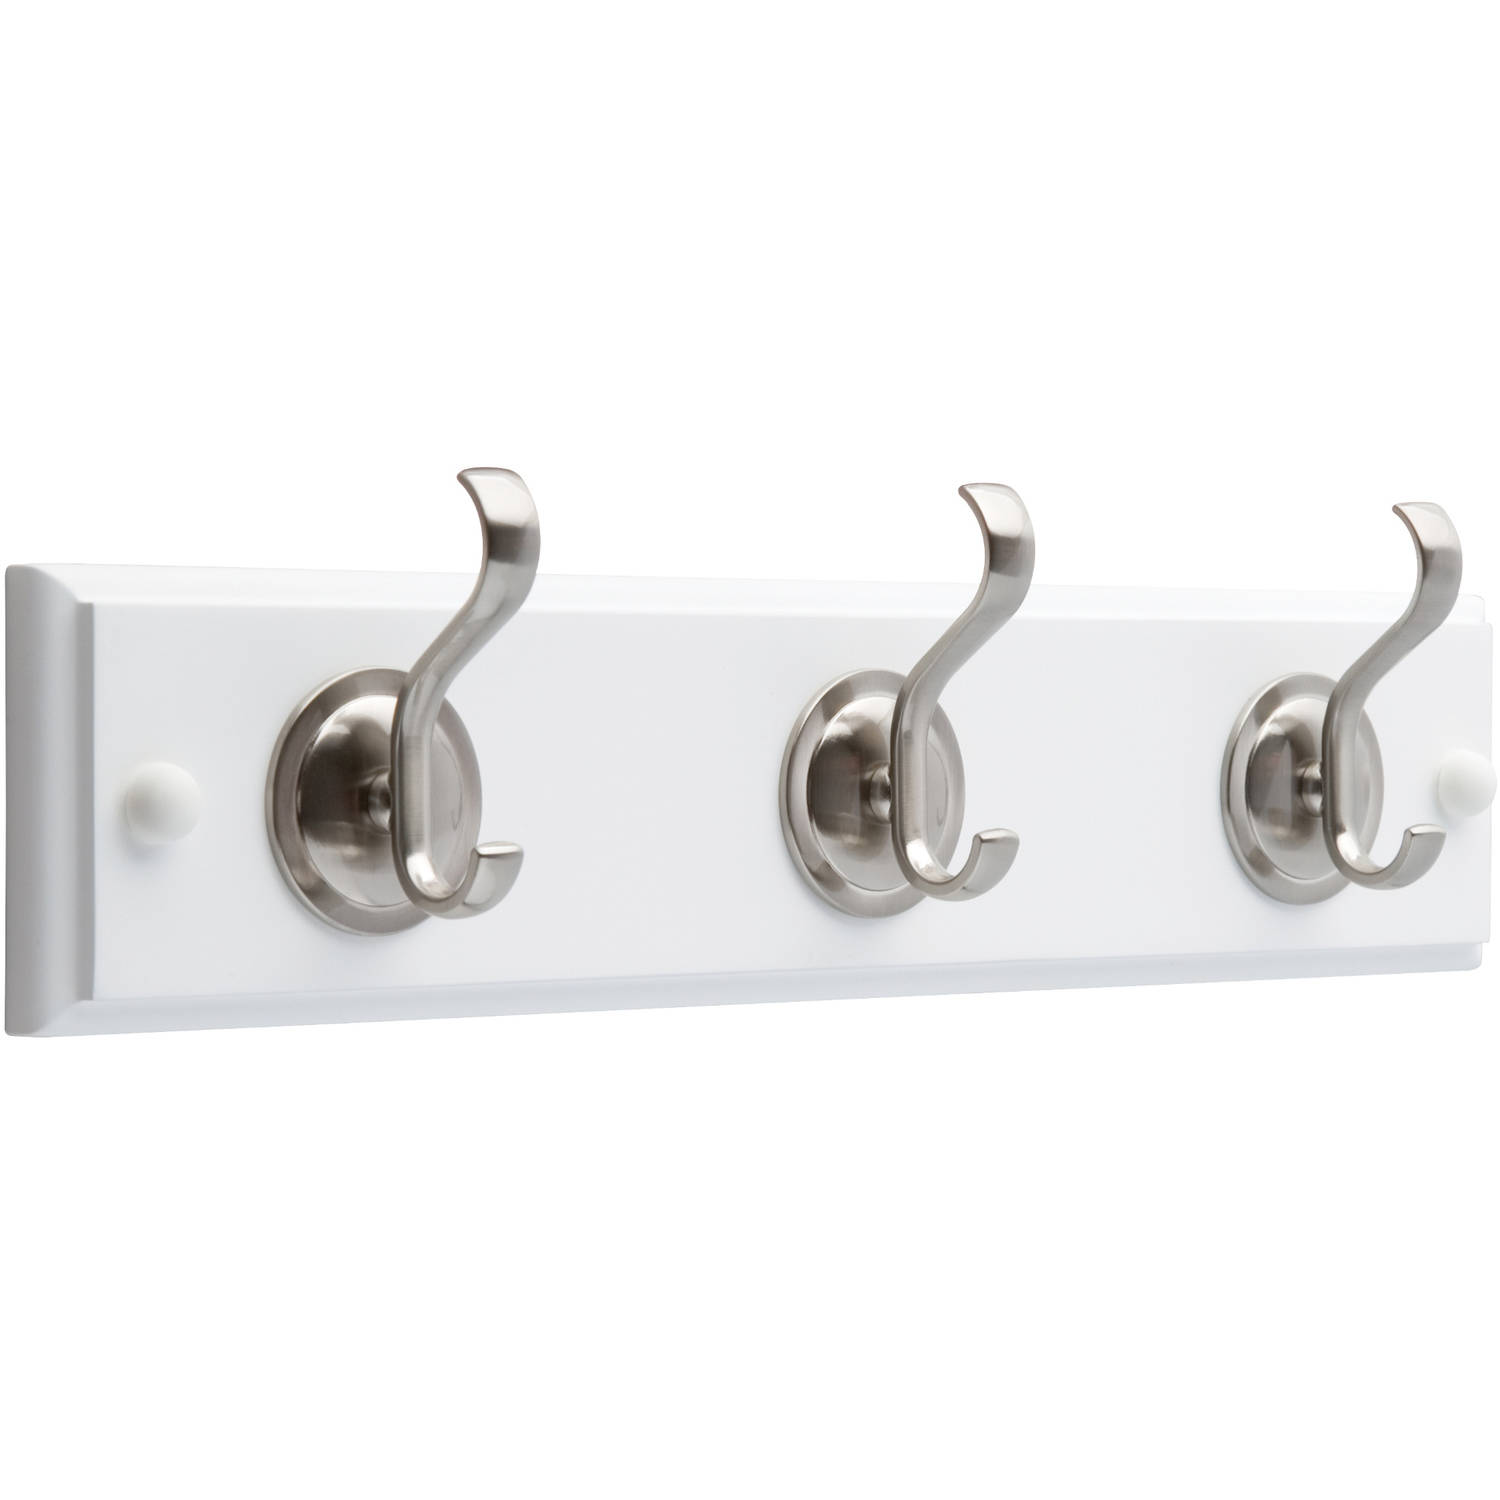 office coat hooks. Office Depot Door Hangers | Cubicle Coat Hook Hooks For Cubicles T